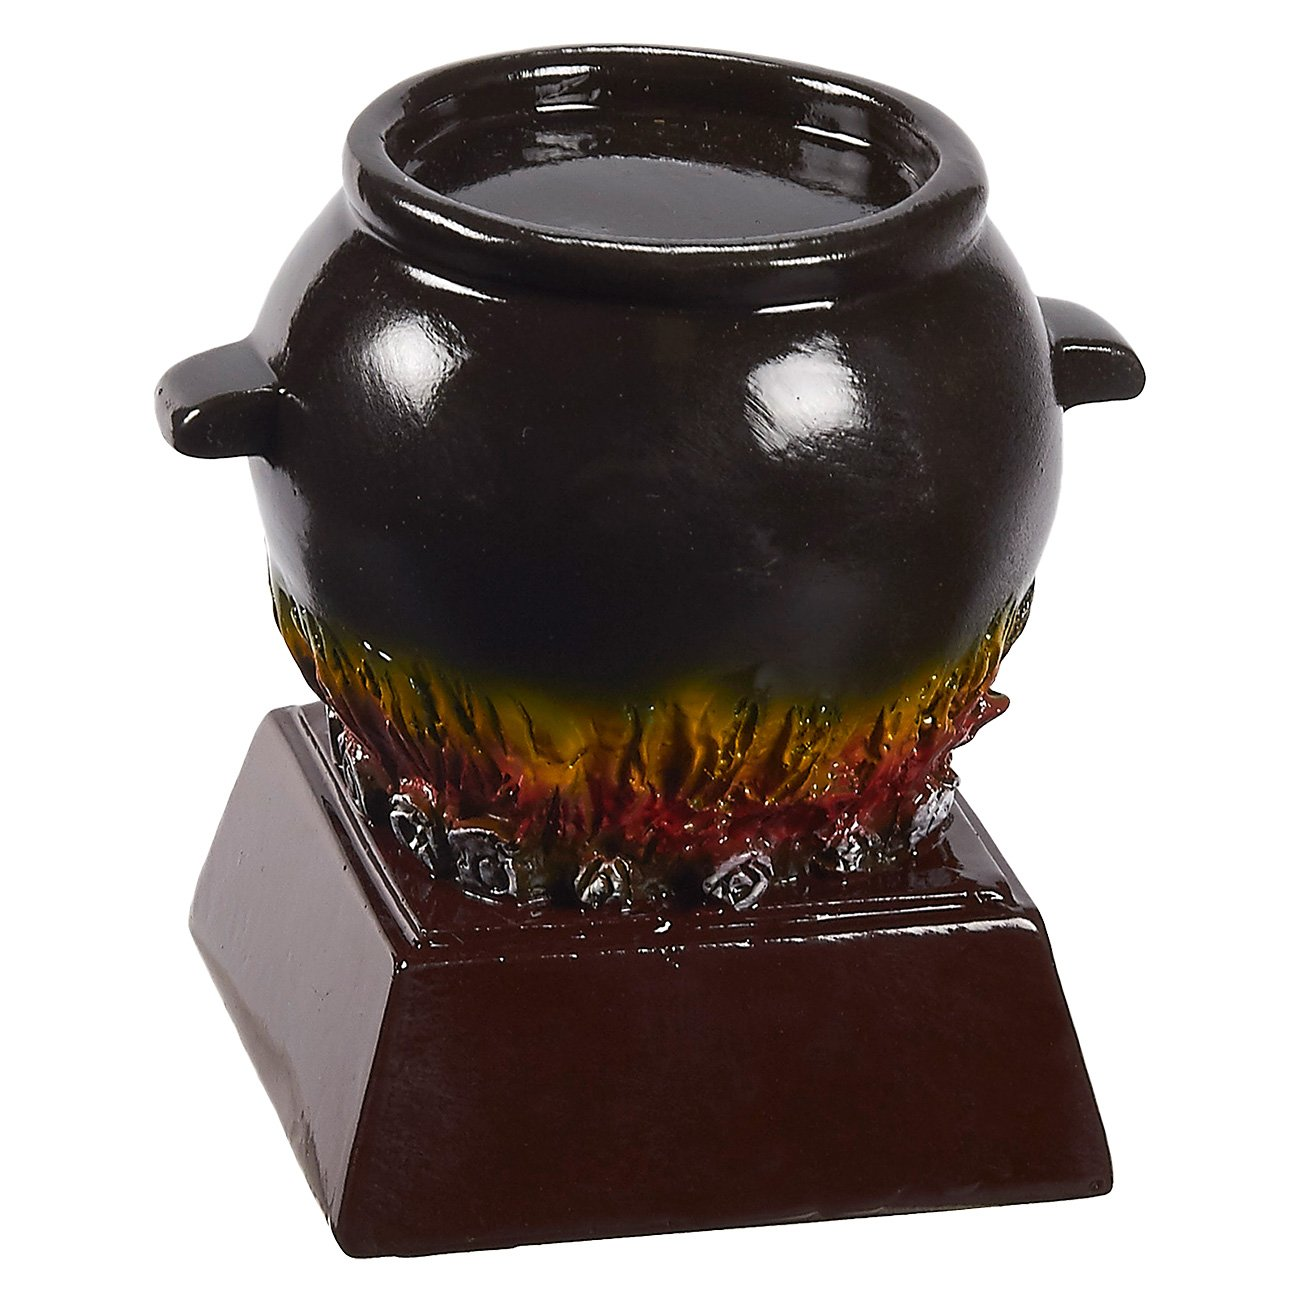 Juvale Chili Pot Trophy - Small Chili Pot Sculpture Resin Award Trophy for Tournaments, Competitions, Parties, 3.5 x 3.5 x 3 Inches